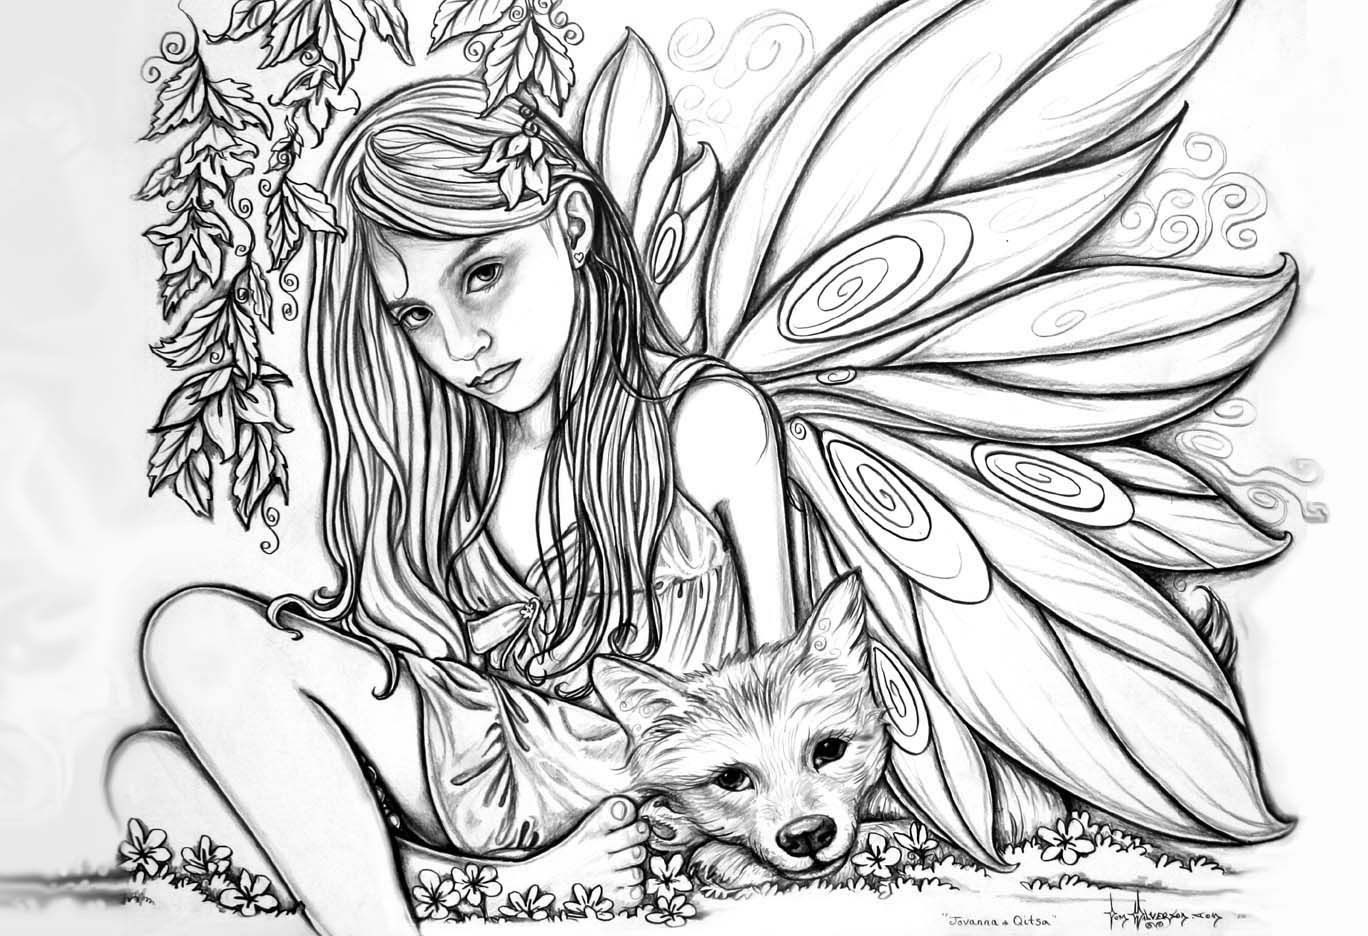 Coloring Pages For Adults Difficult Fairies  Printable Difficult Coloring Pages Coloring Home